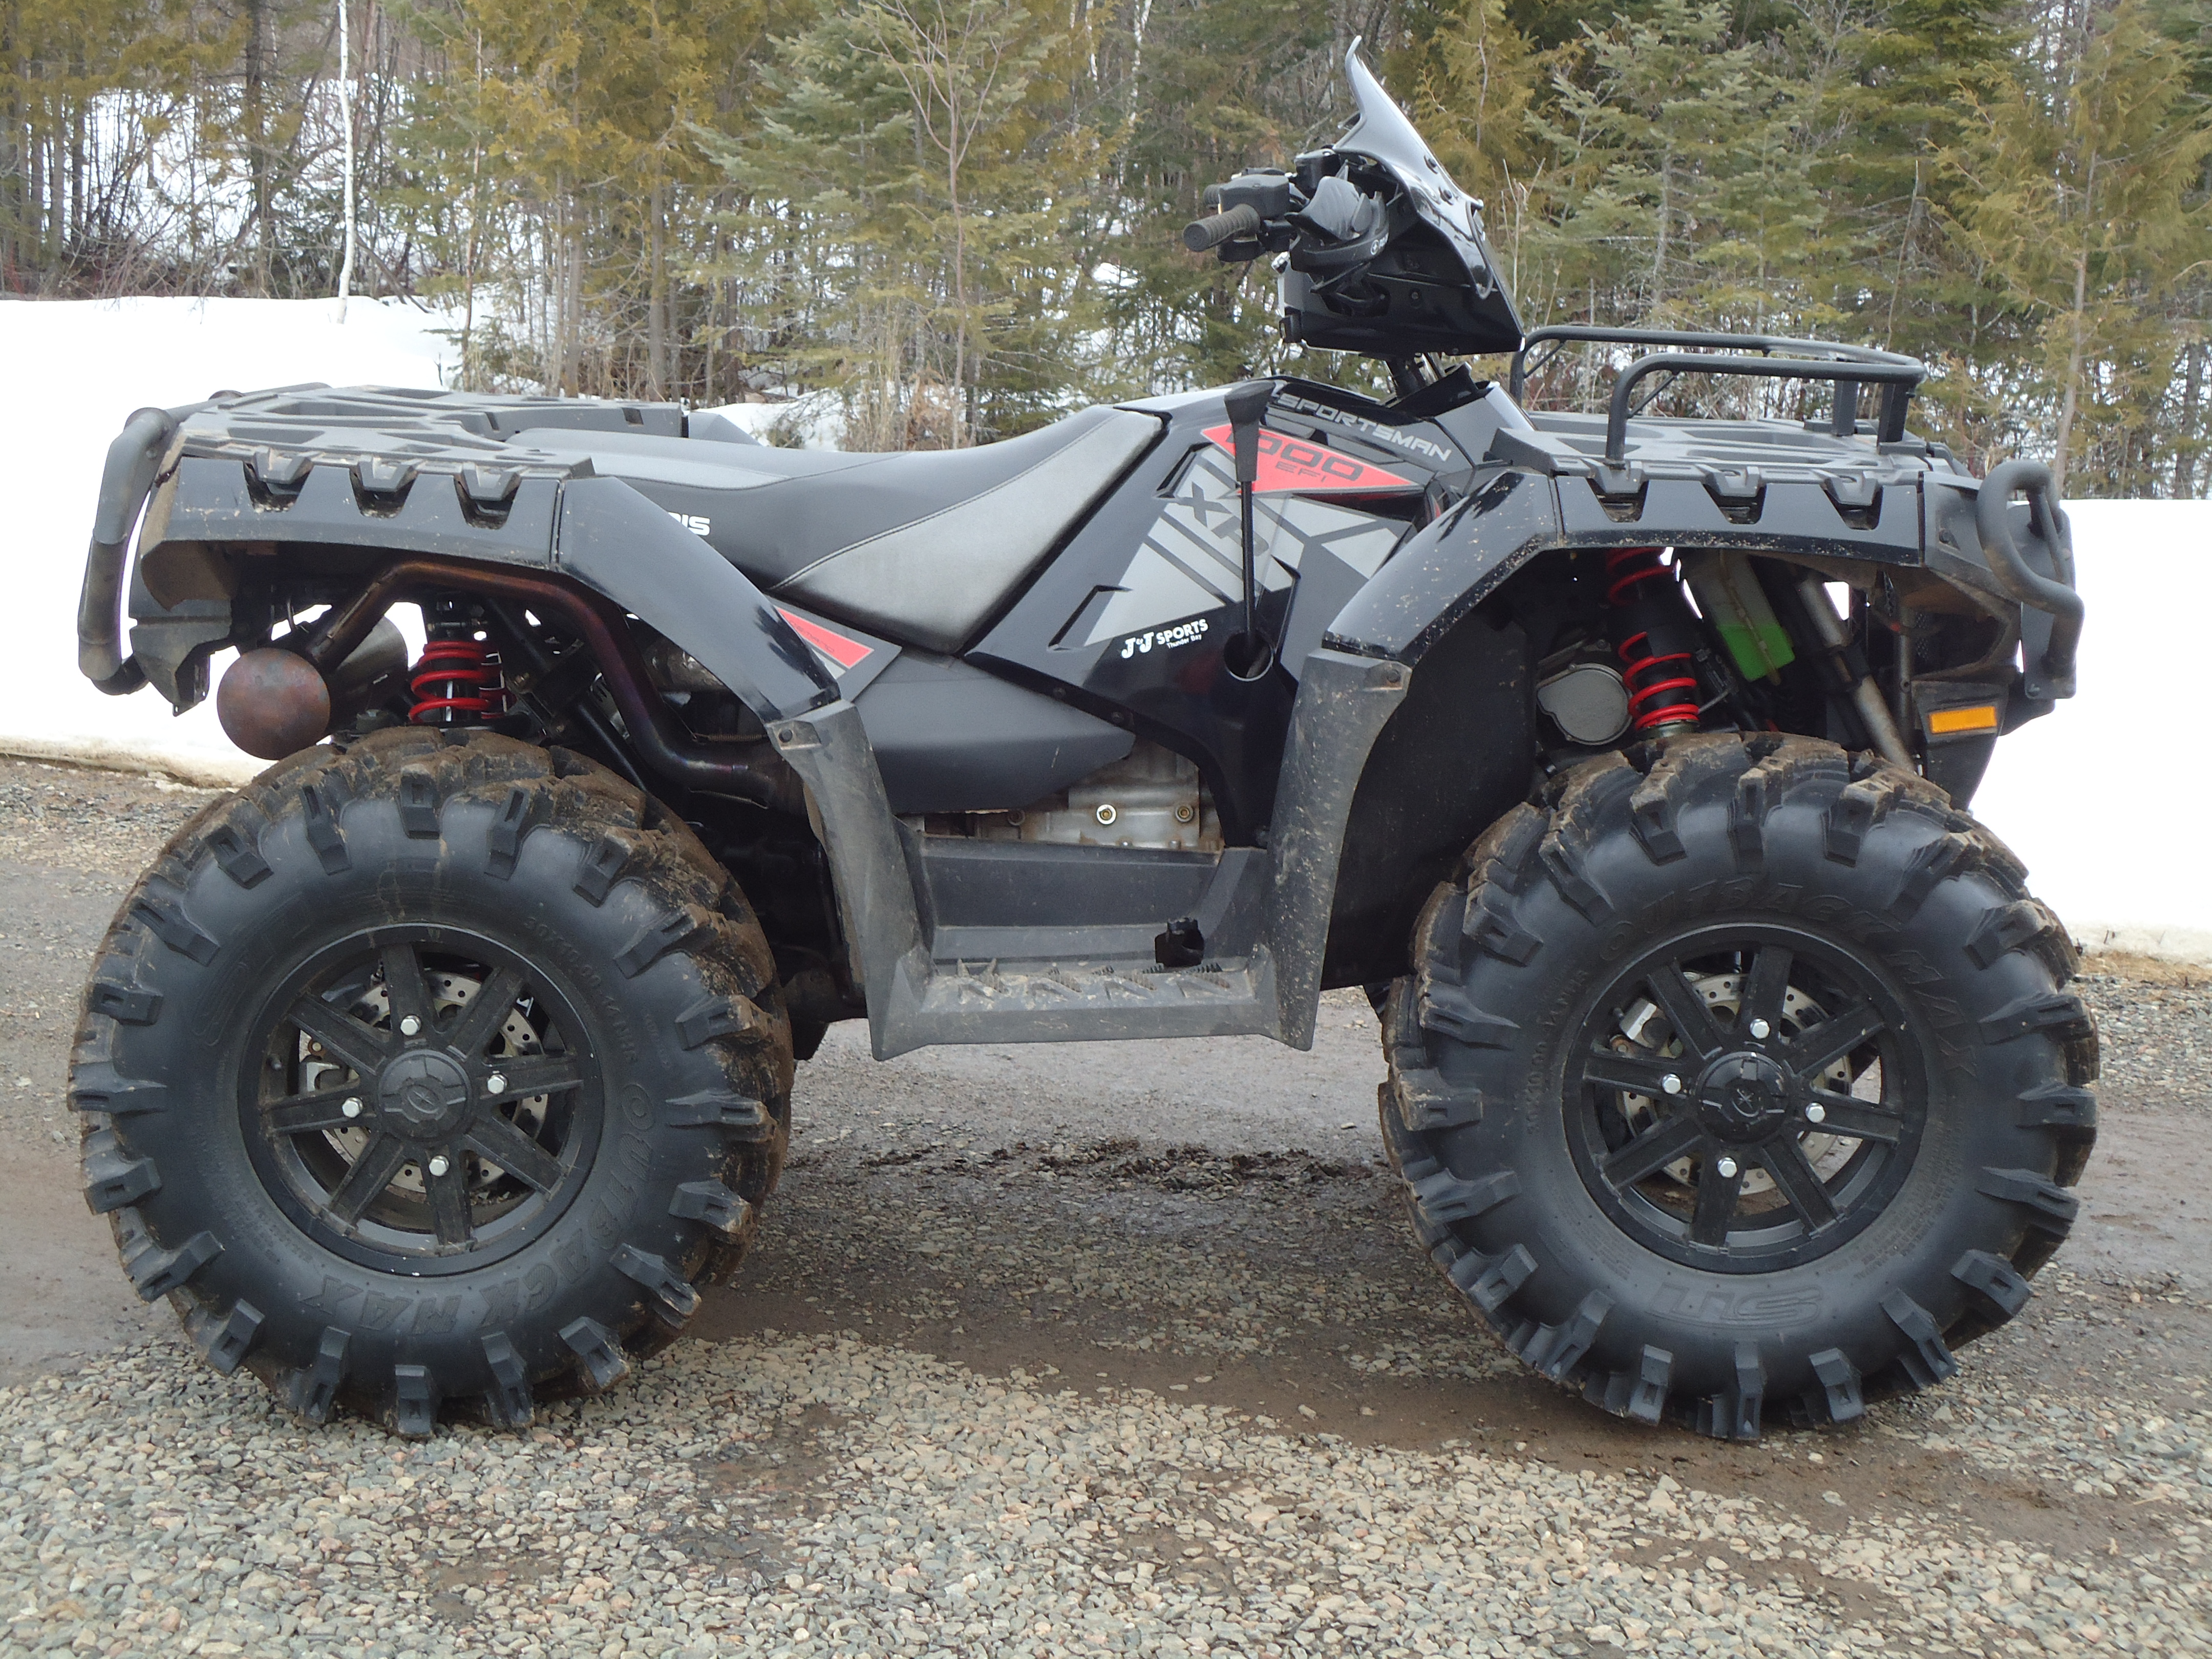 Lift Kit on a Sportsman 850/1000??? - Page 4 - Polaris ATV ...